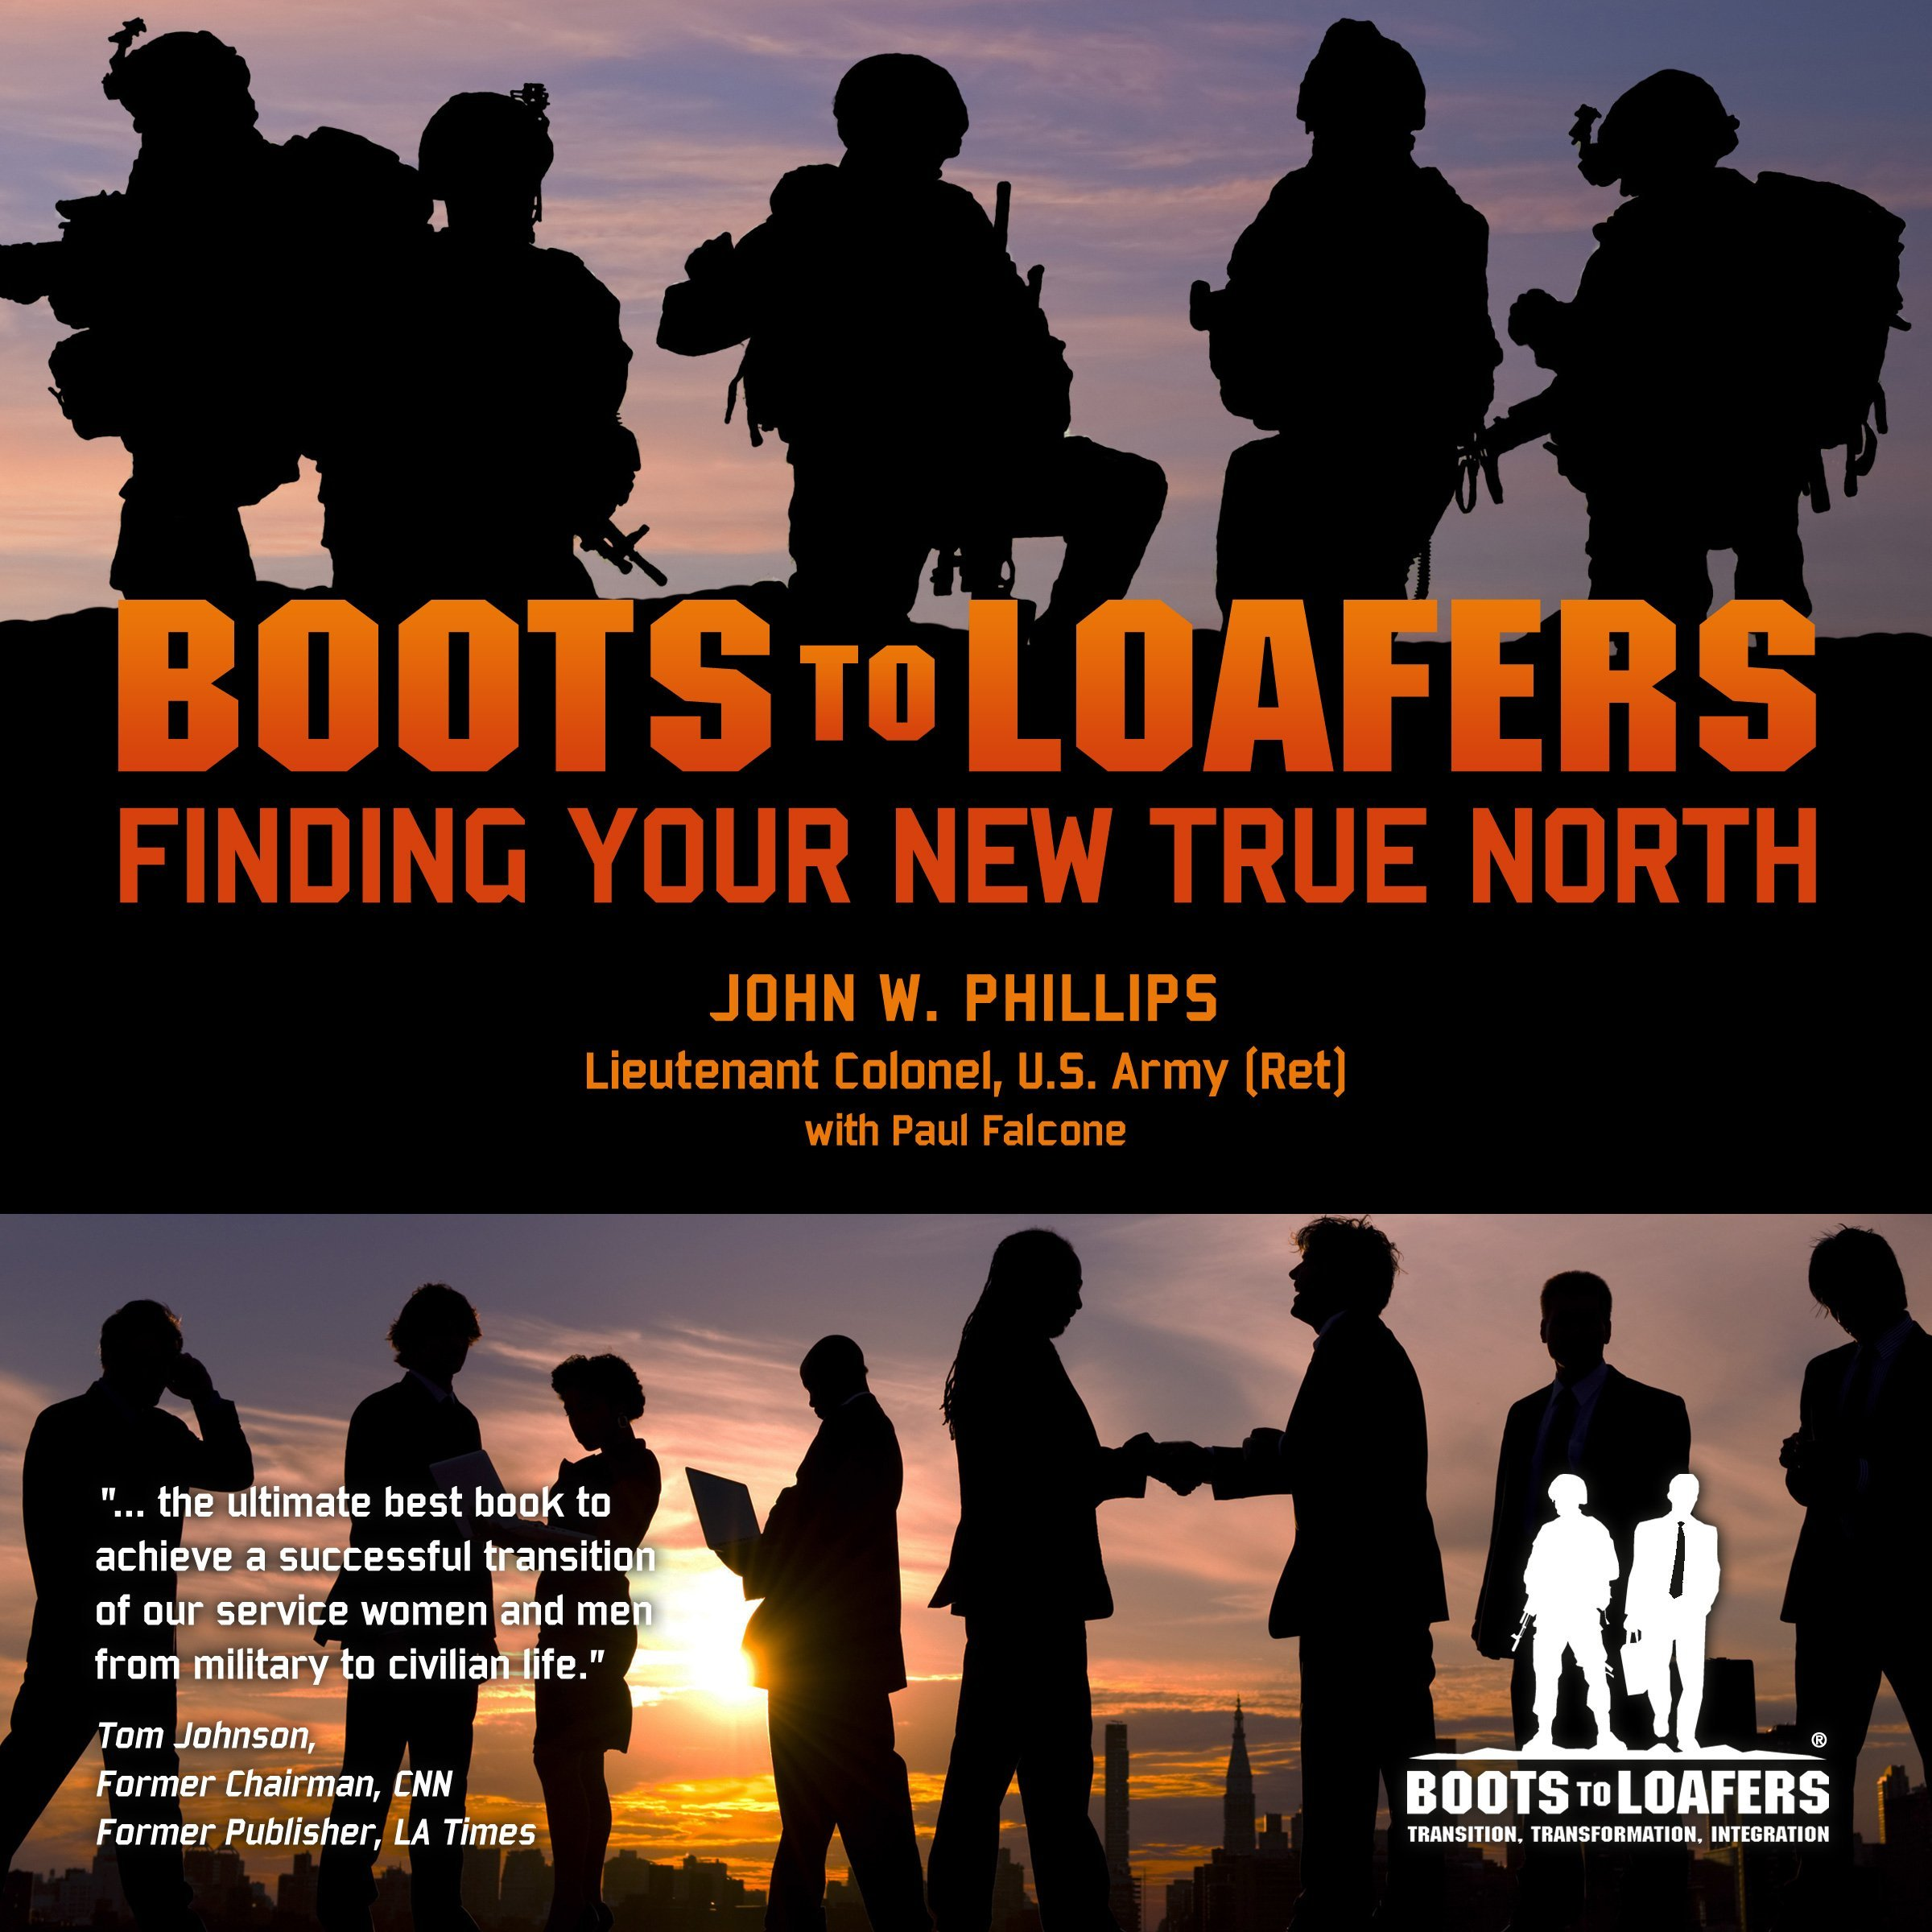 Boots to Loafers: Finding Your New True North